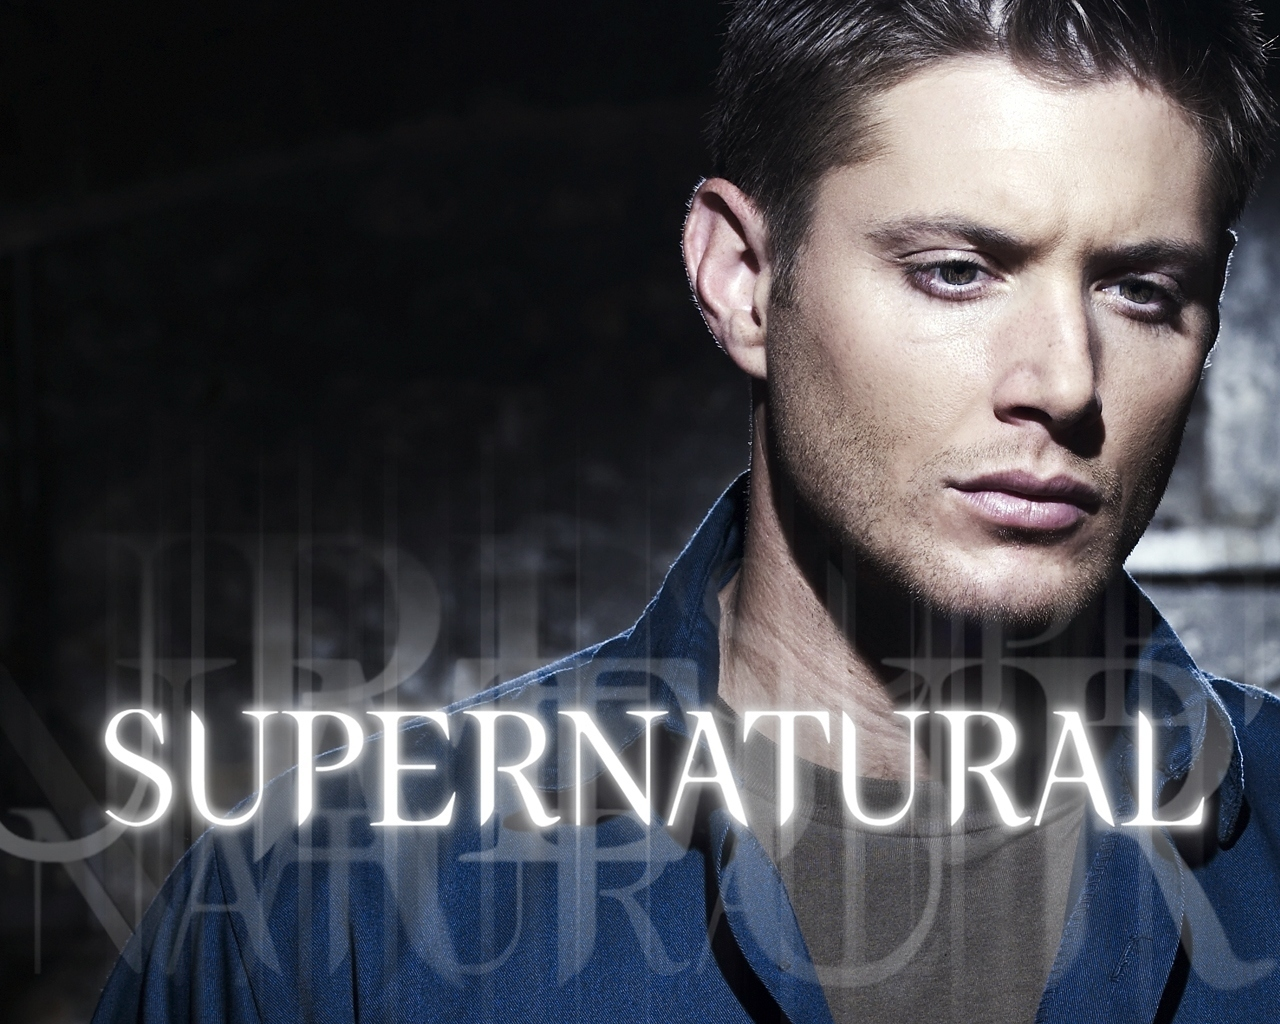 Dean - Supernatural Wallpaper (3946653) - Fanpop